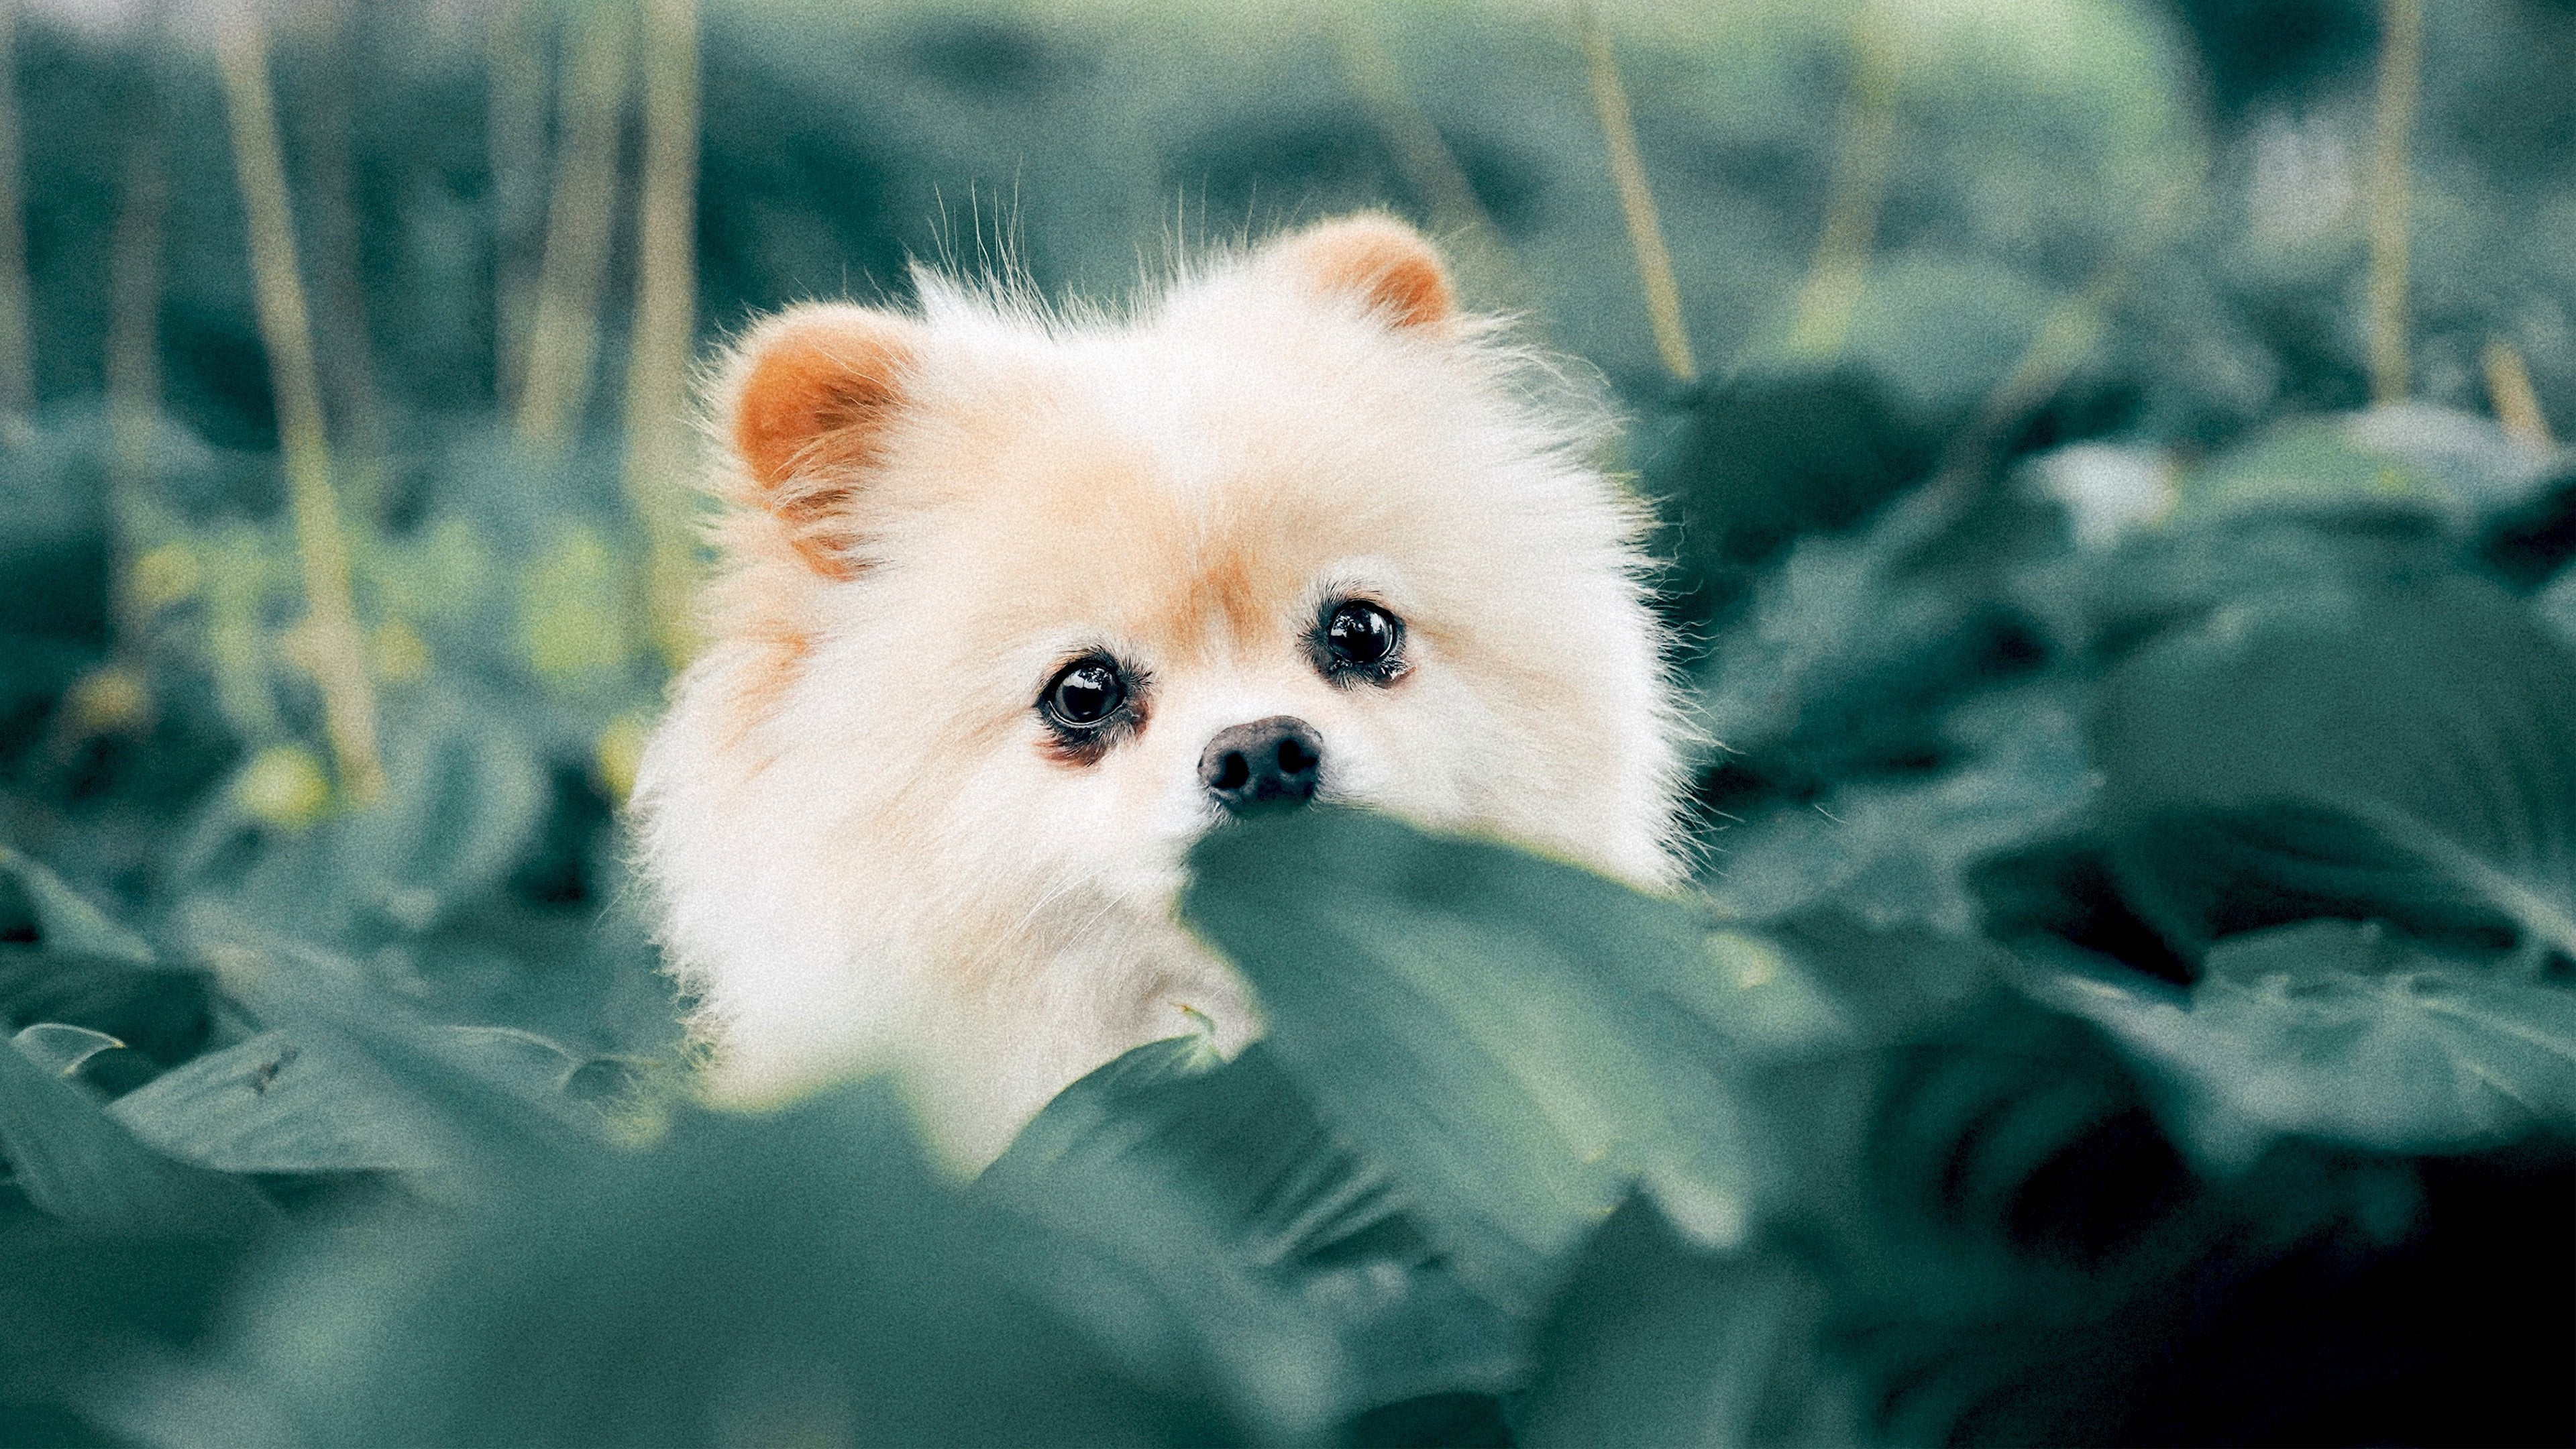 puppy 4K wallpapers for your desktop or